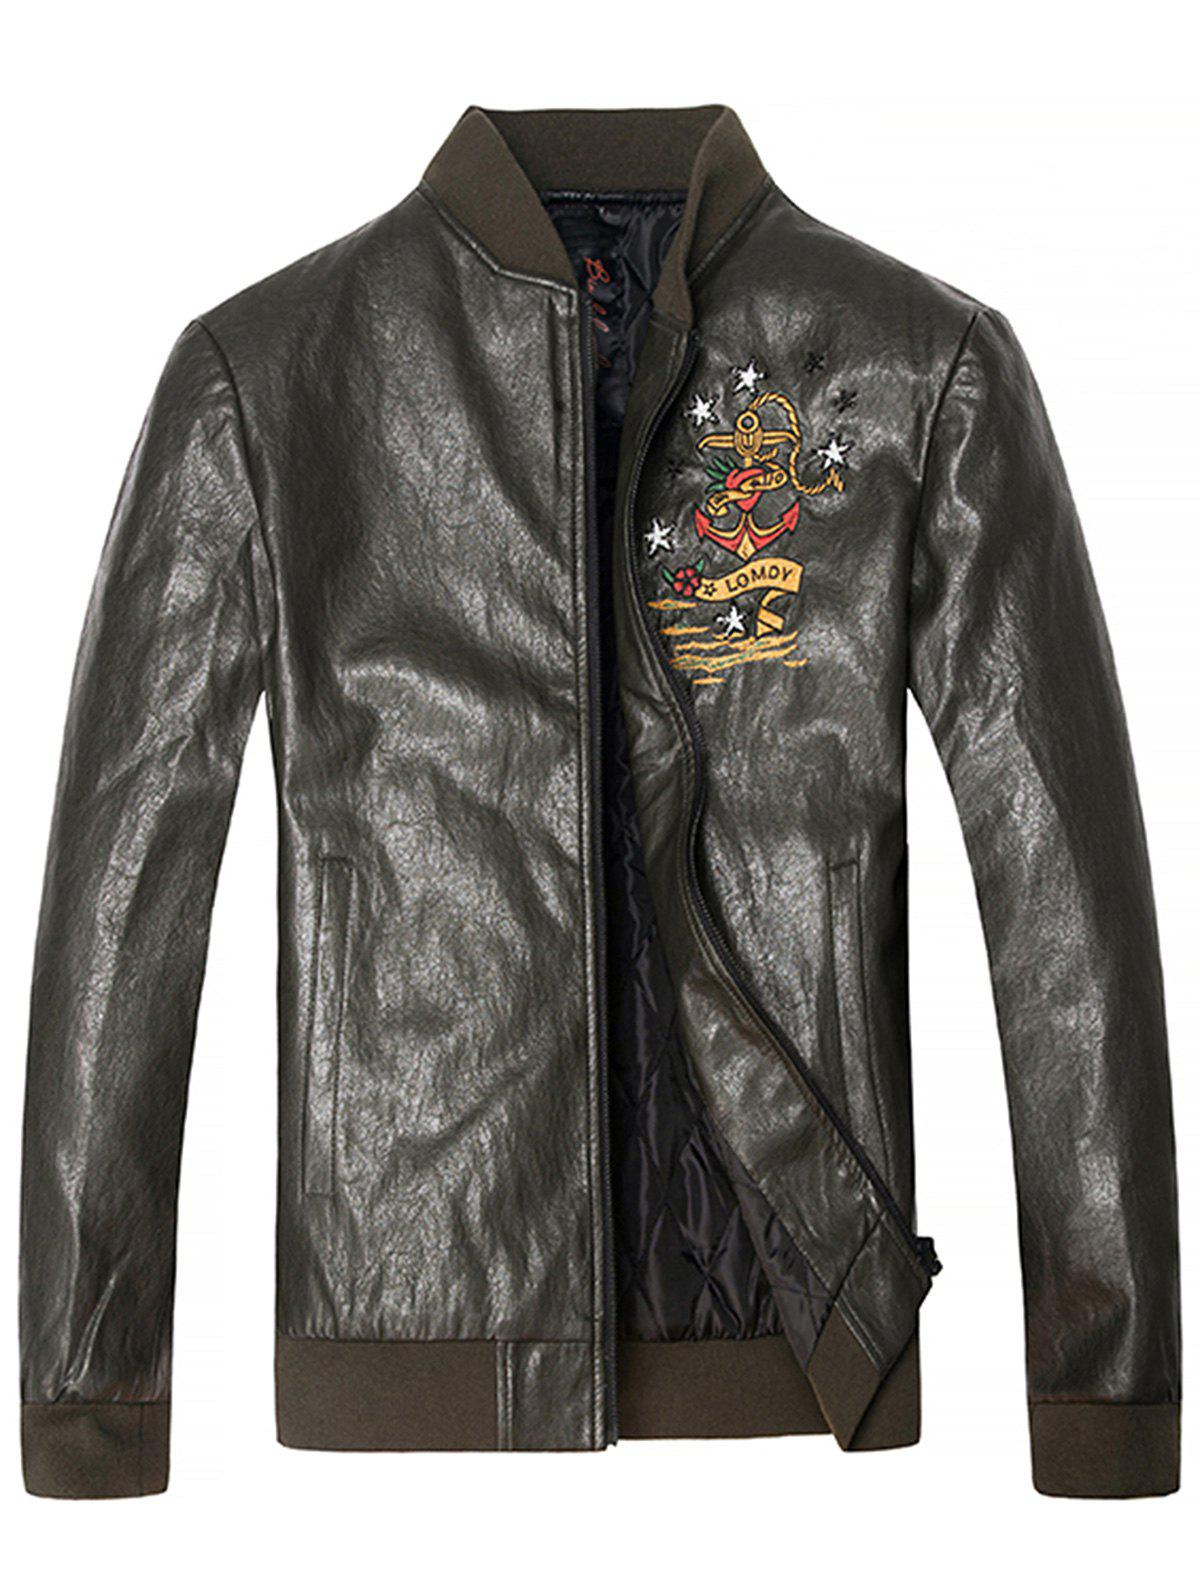 Shops Embroidered Zip Up PU Leather Jacket